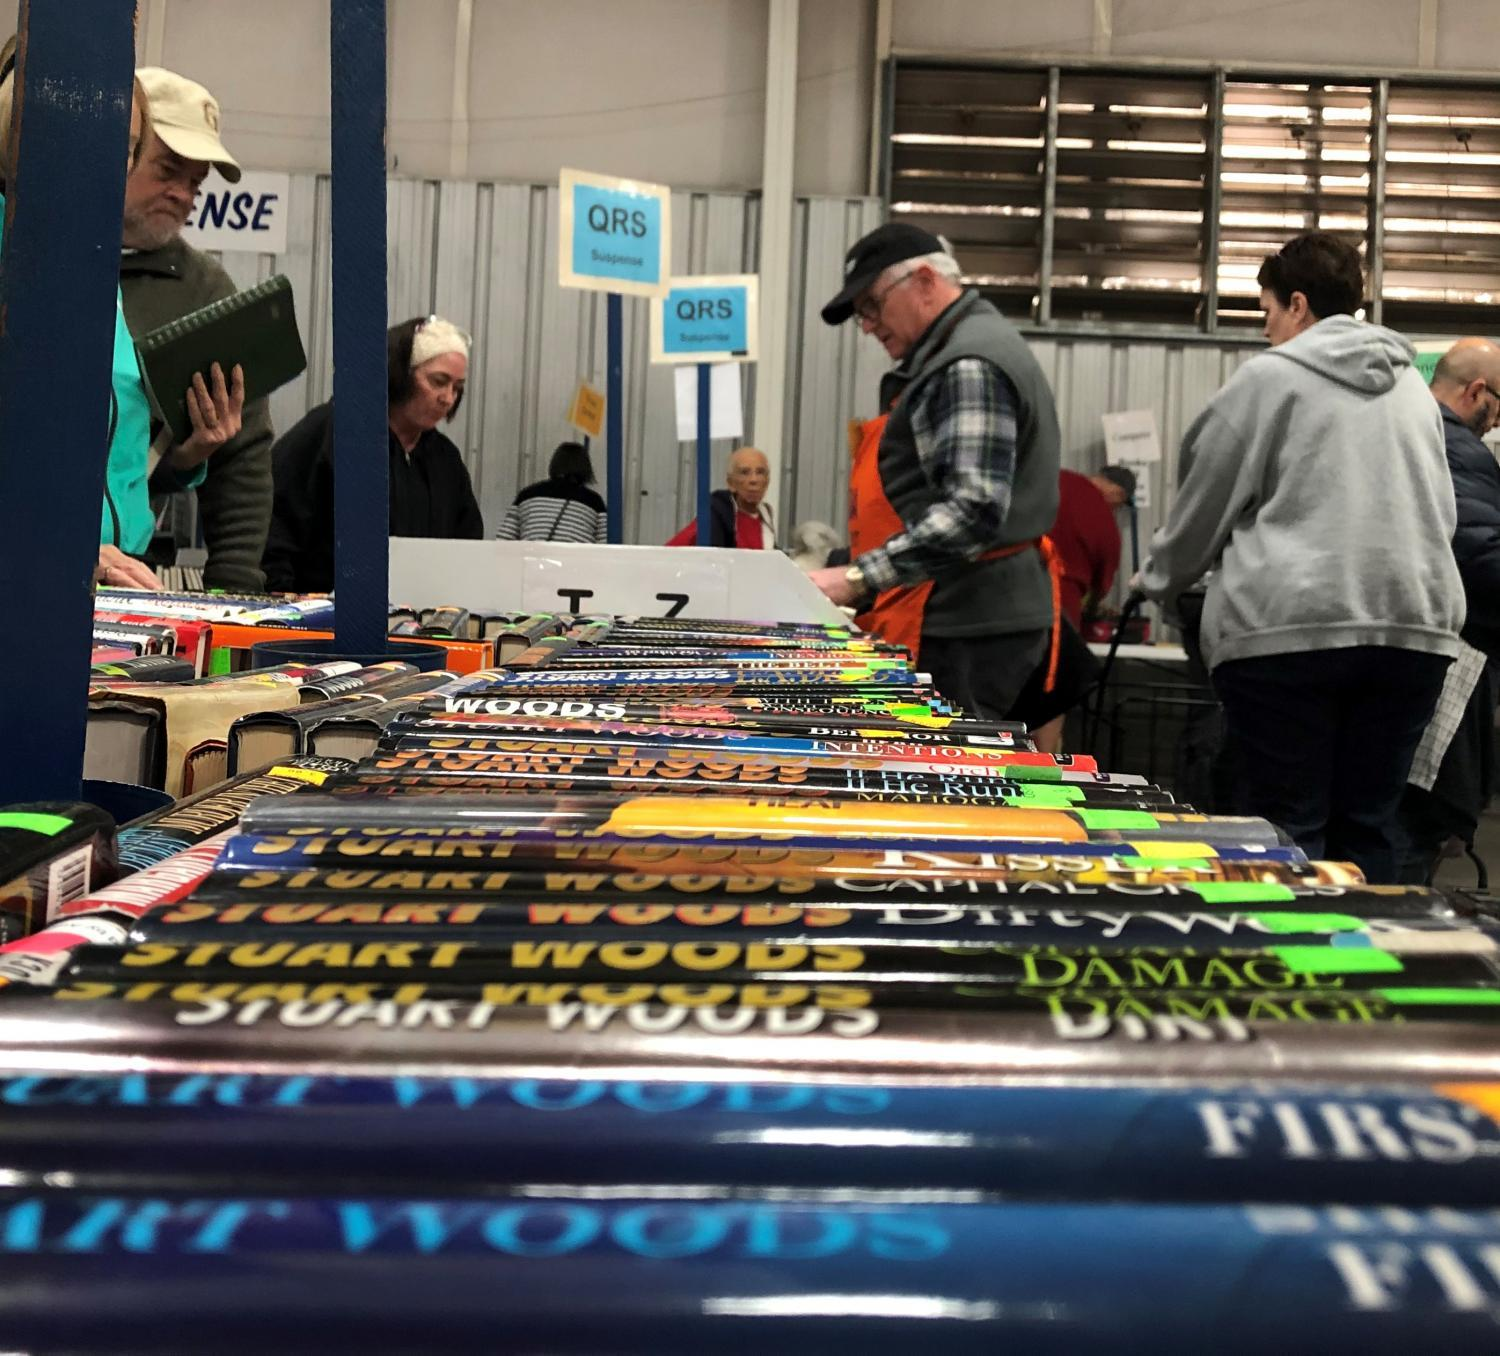 People peruse hundreds of thousands of books at the 63rd annual VNSA book fair.